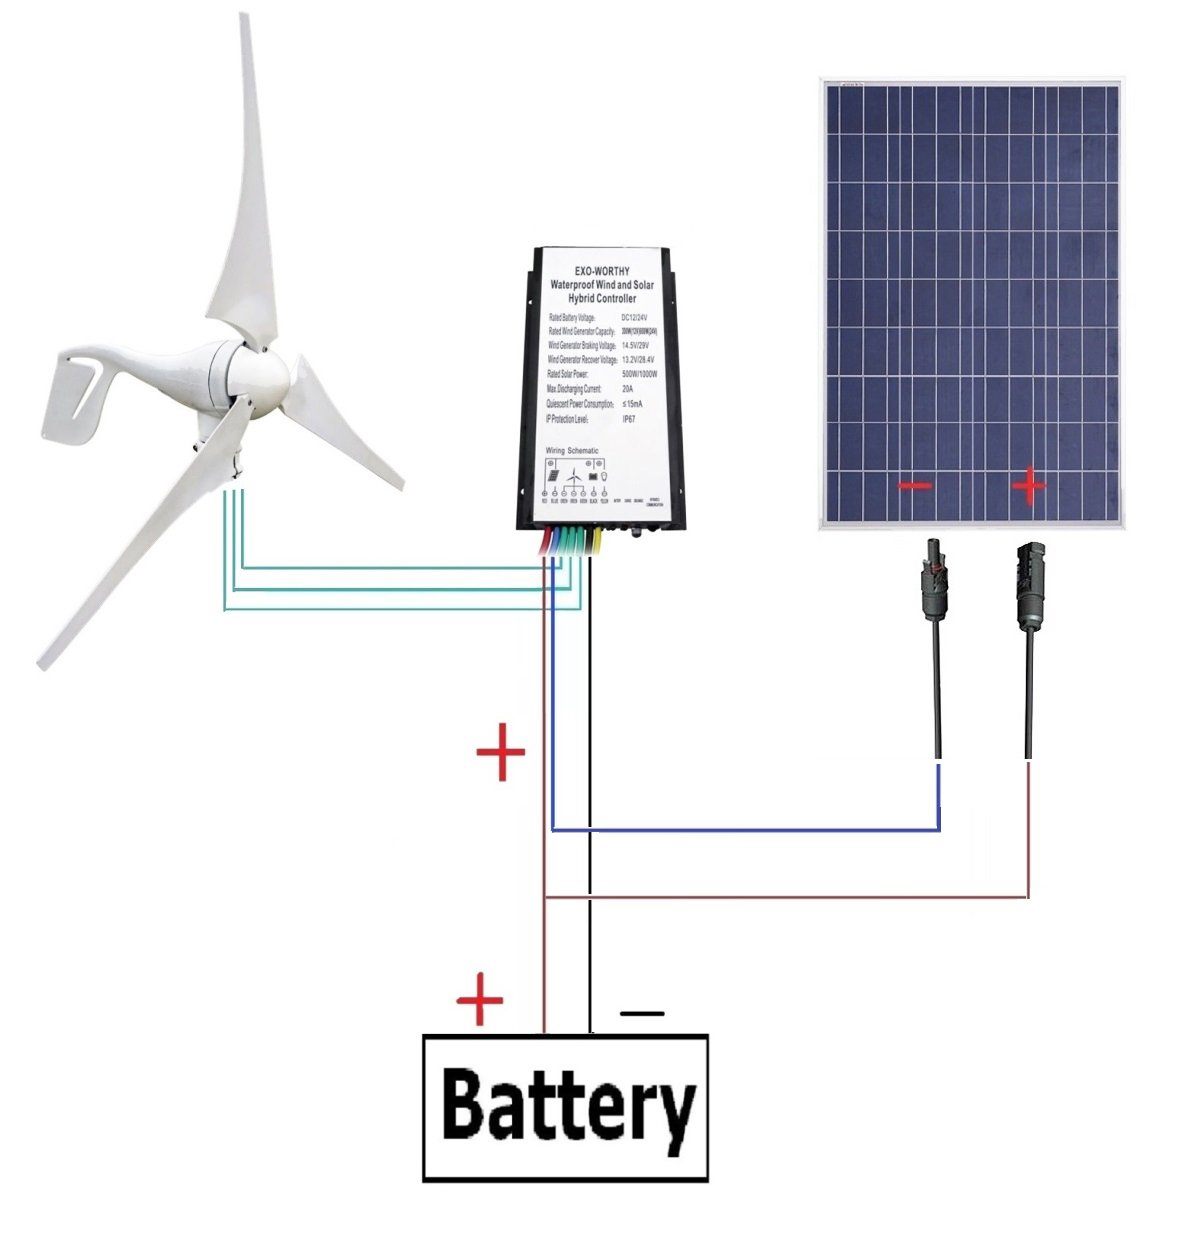 12 Volt Wind Turbine Wiring Diagram Diagrams Box Battery Amazon Com Eco Worthy 400w Generator 100w Setup